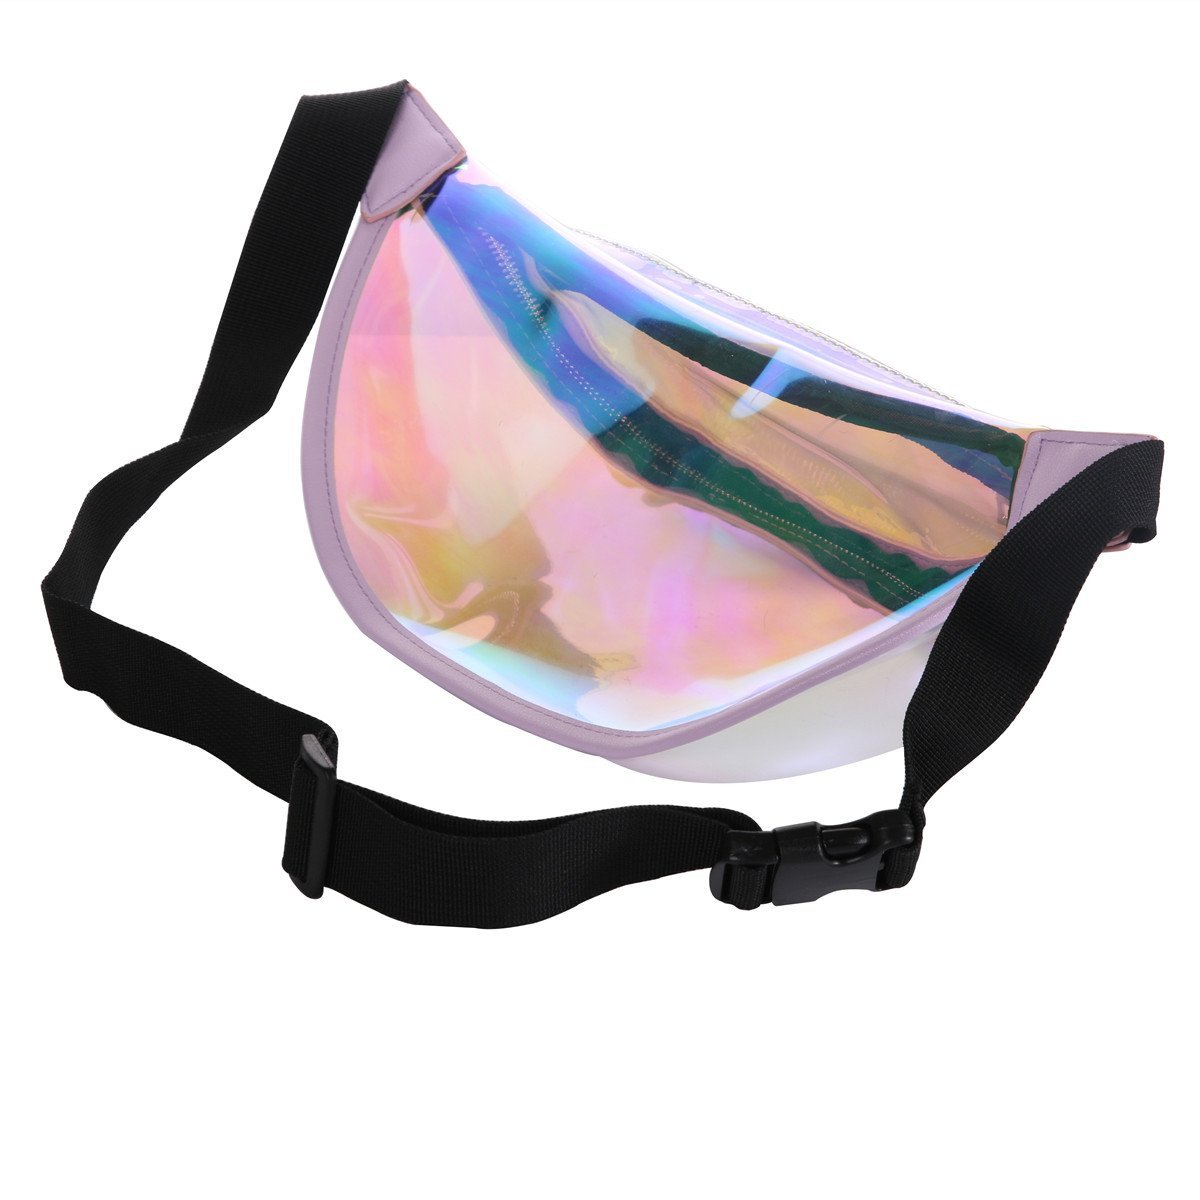 Transparent Waist Pack RIDPIX Fanny Pack Fashion Waist Bag With Adjustable Belt For Travel Party Rave Festival